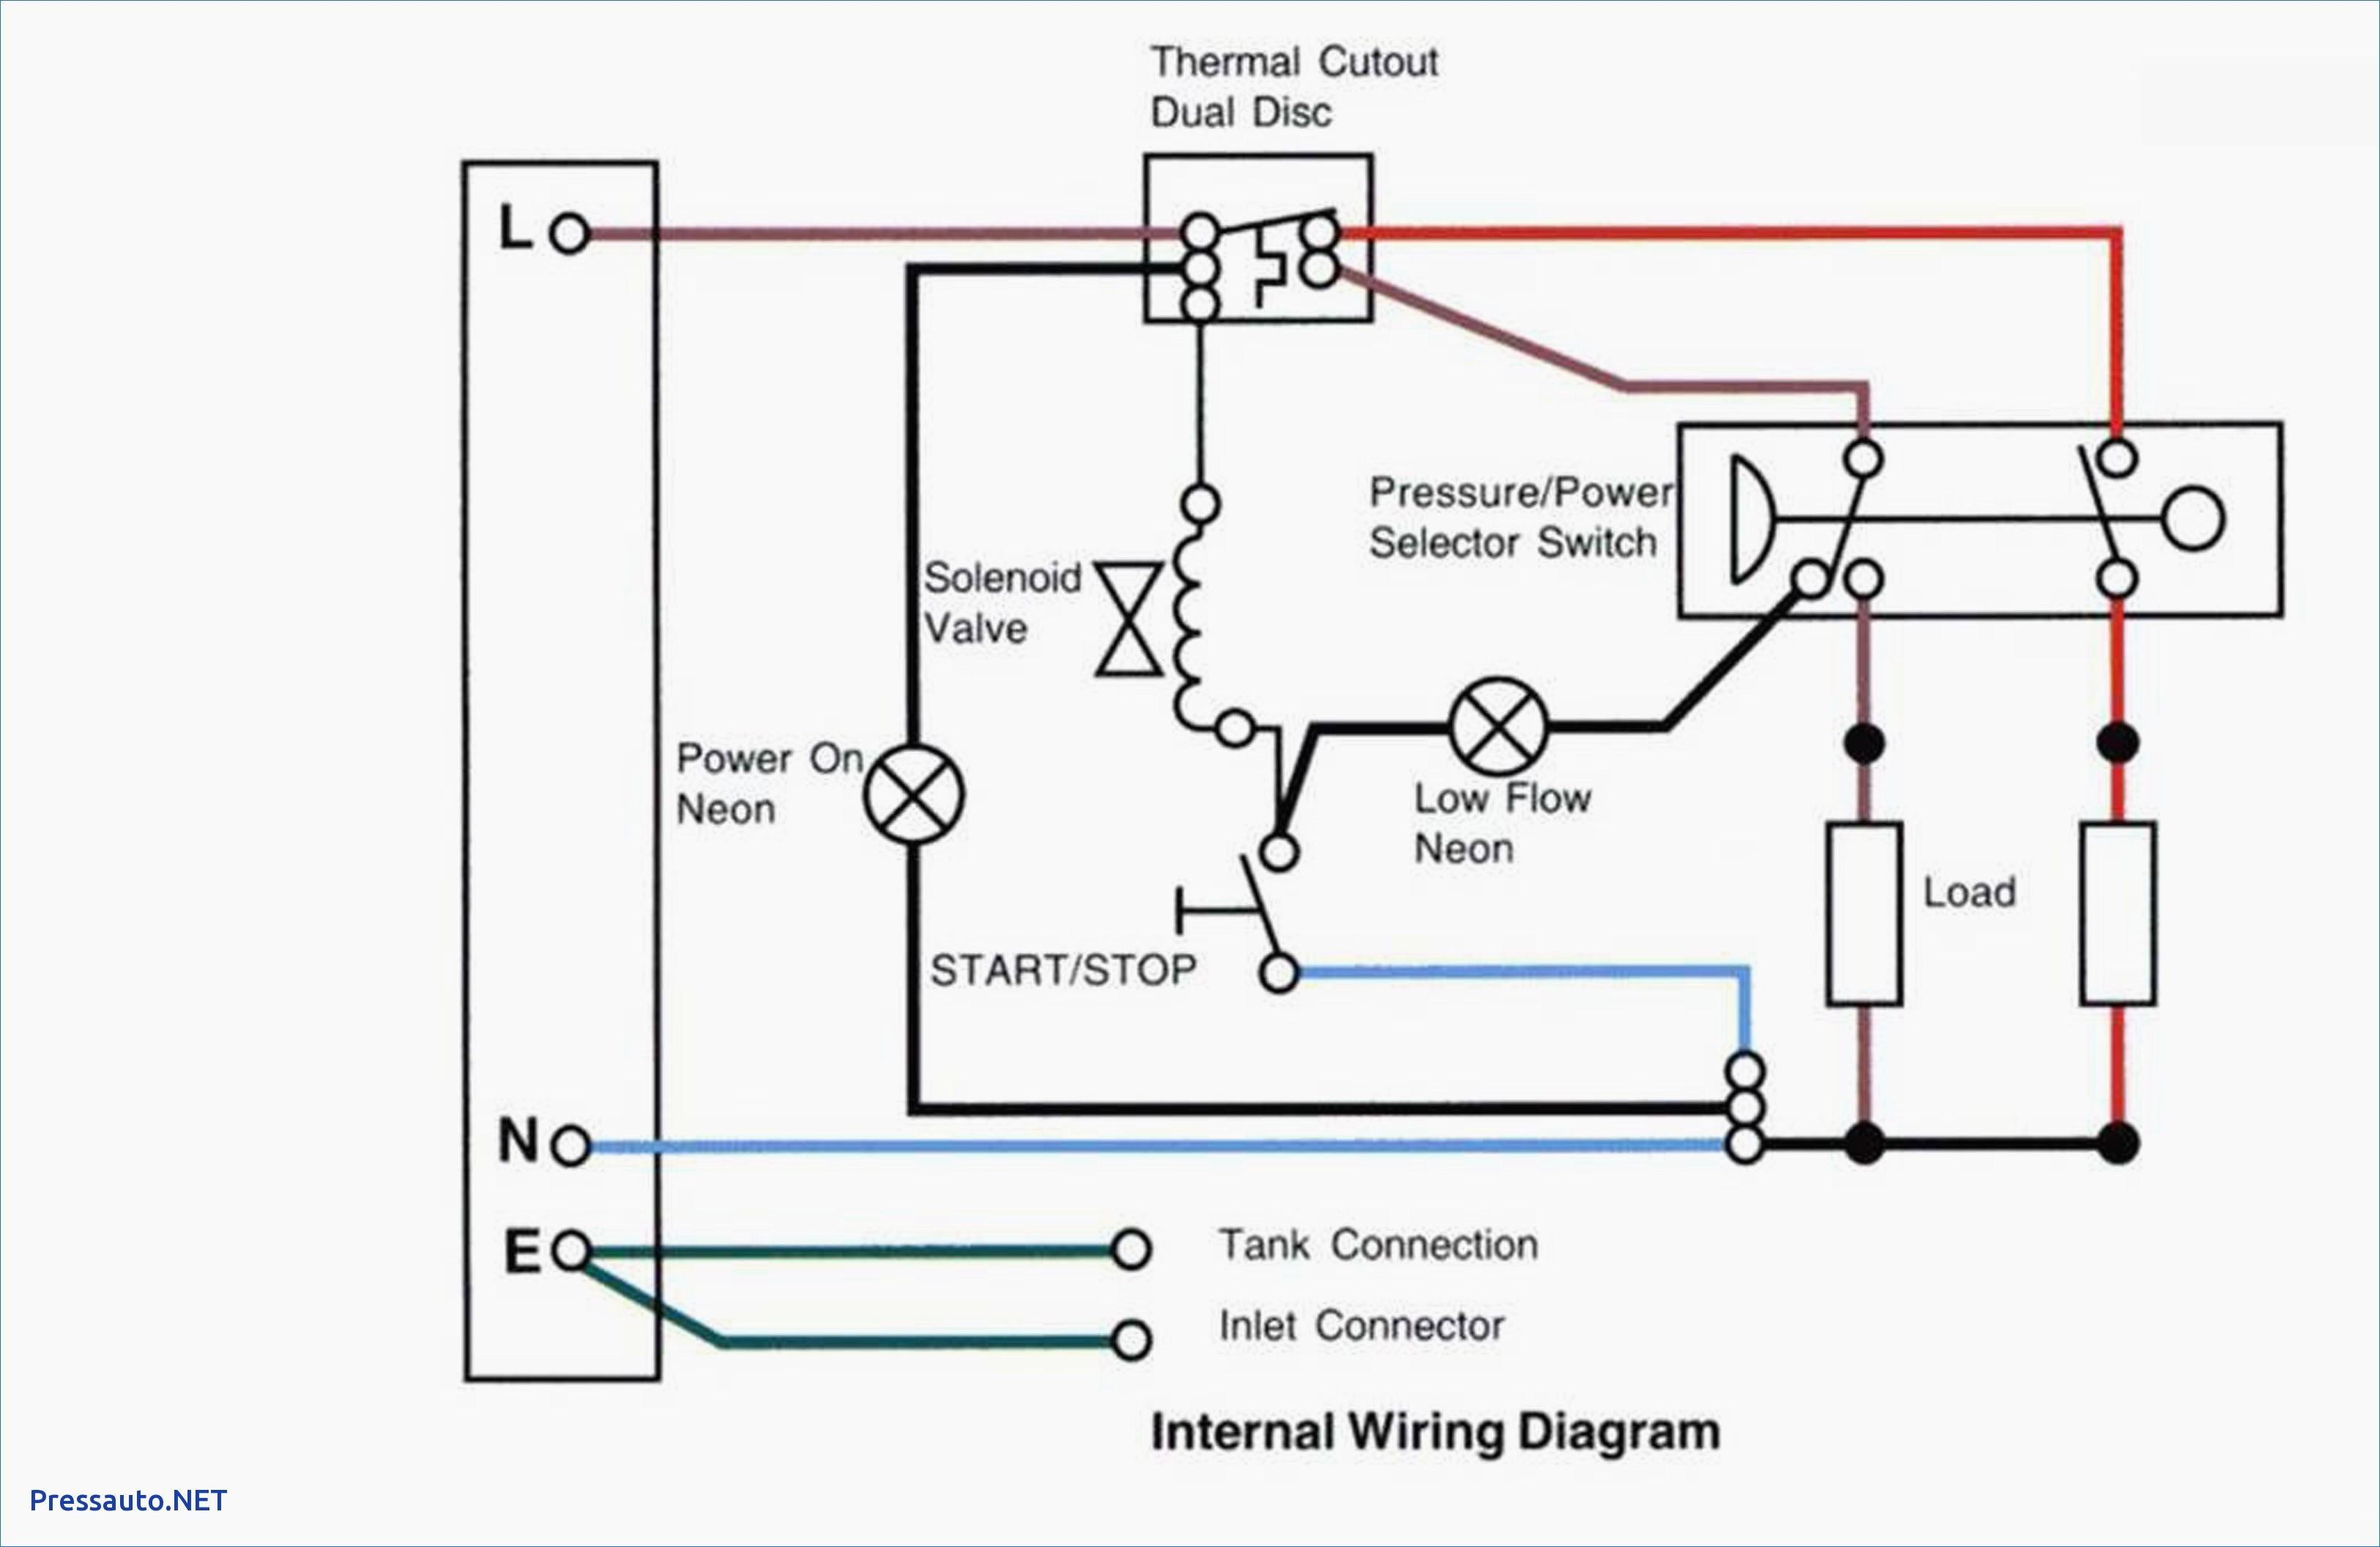 3 Position Selector Switch Wiring Diagram Diagram Pole Position Rotary Switch Wiring toggle Changeover 2 Of 3 Position Selector Switch Wiring Diagram